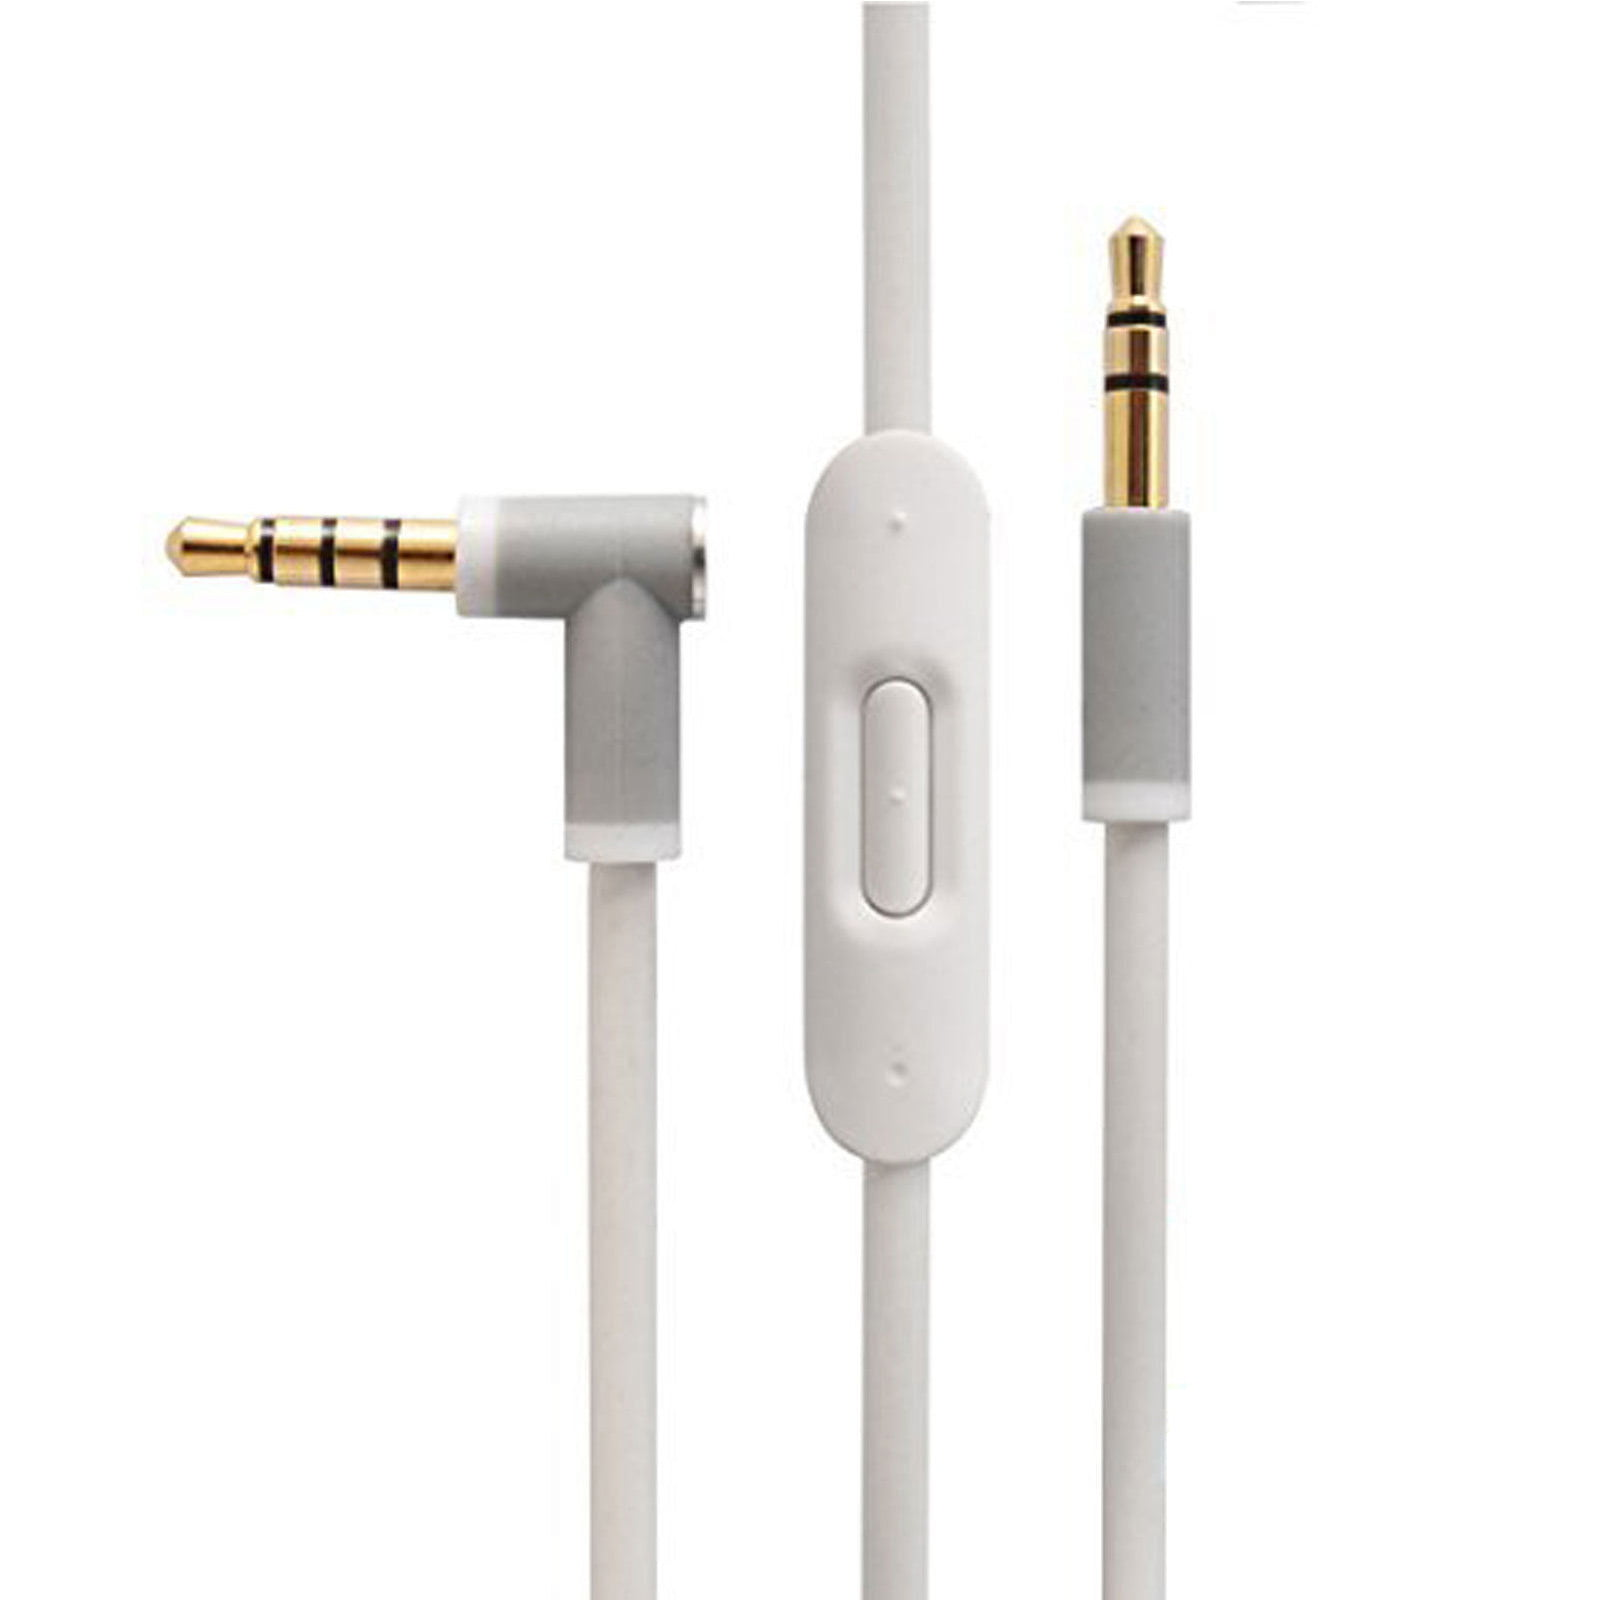 3.5mm Replacement Audio Cable Cord Wire For Beats By Dr Dre PRO DETOX Headphones White